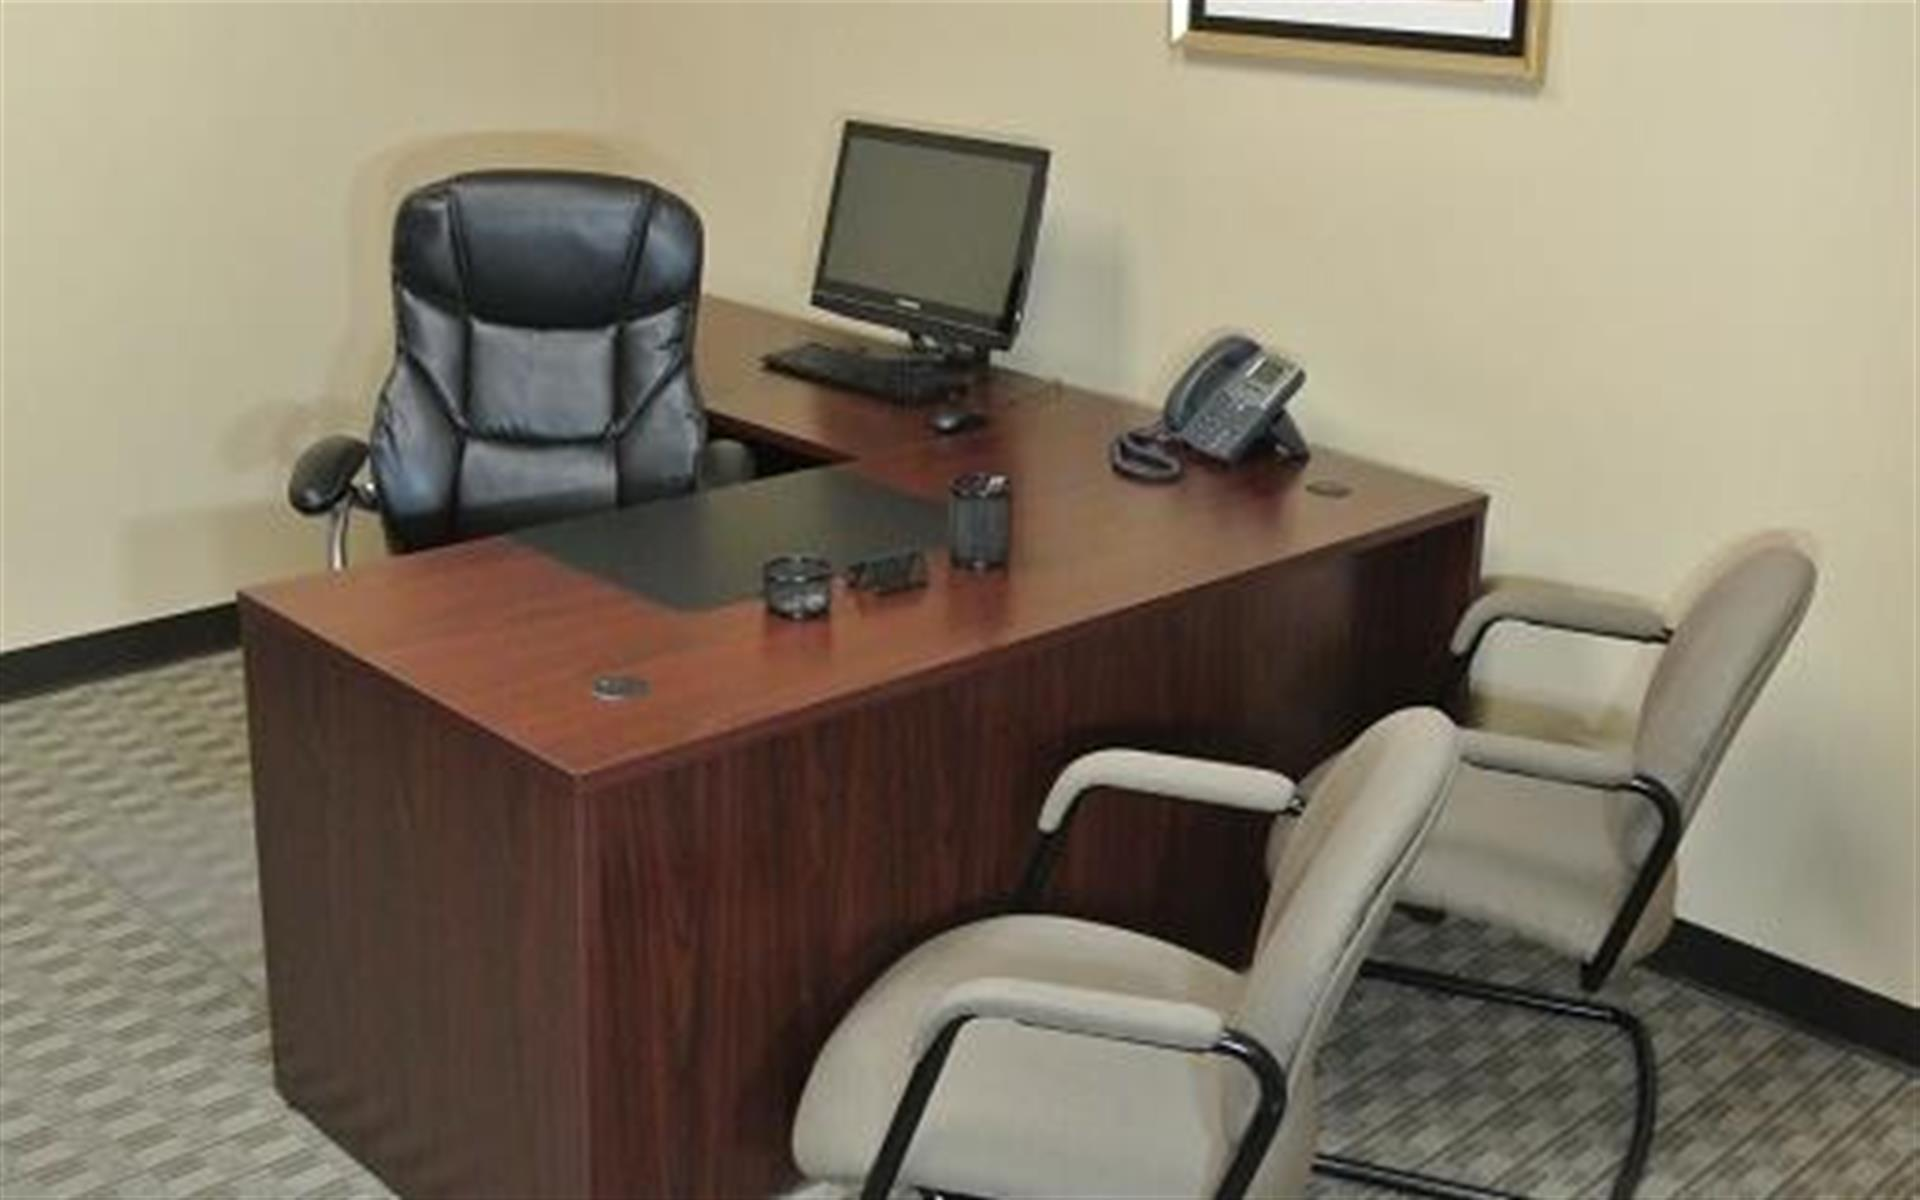 Orlando Office Center - Downtown Orlando - Office by the Hour